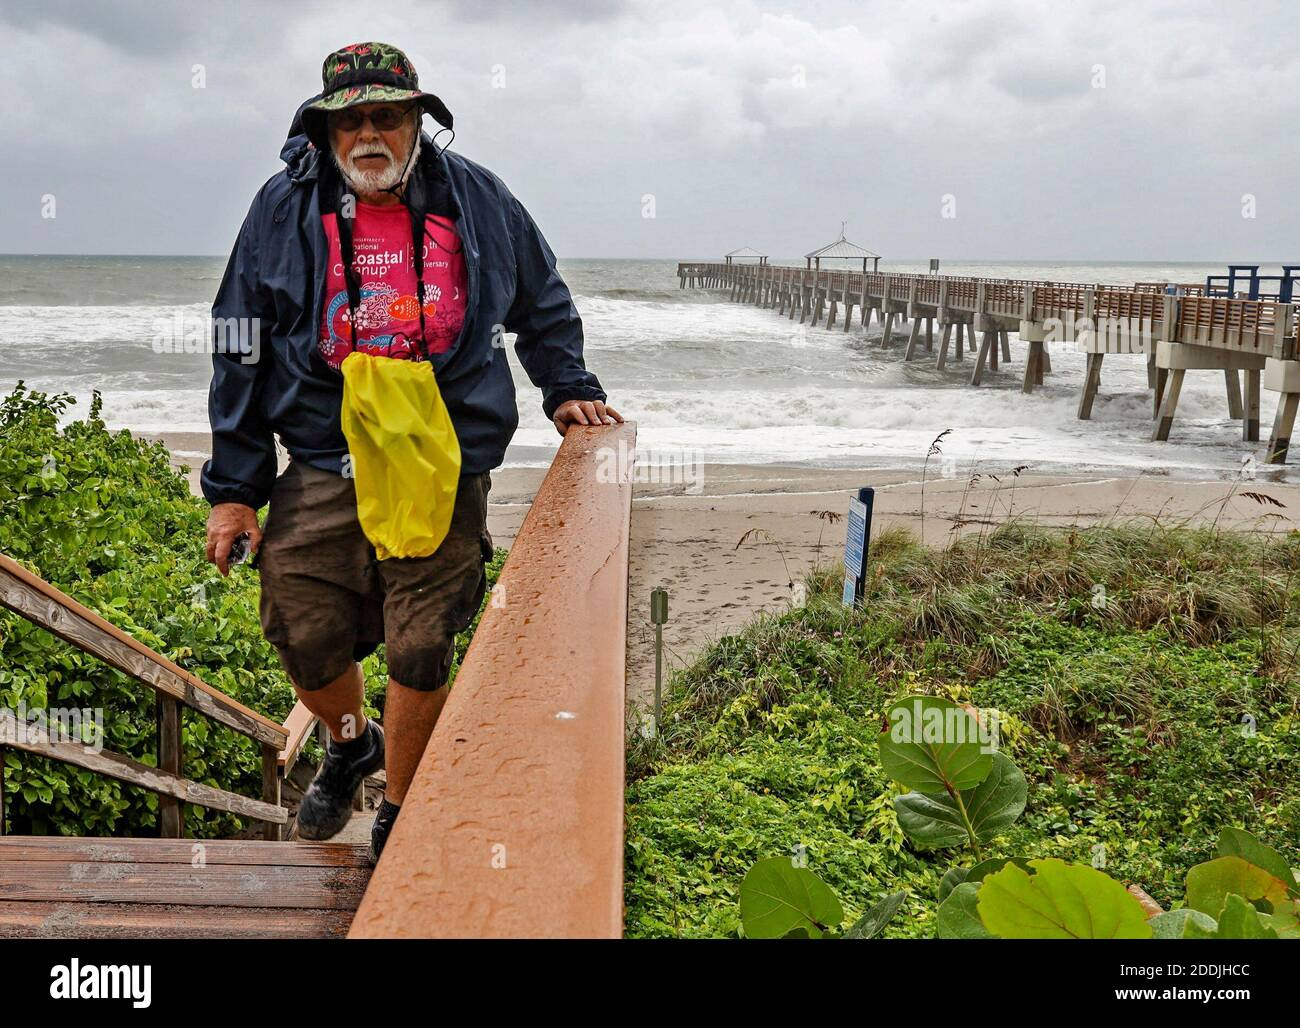 NO FILM, NO VIDEO, NO TV, NO DOCUMENTARY - A Beach goer climb the stairs near the Juna Beach Pier as Hurricane Dorian crawls toward Florida while the Category 4 storm continues to ravage the Bahamas on Monday, September 2, 2019. Photo by Carl Juste/Miami Herald/TNS/ABACAPRESS.COM Stock Photo